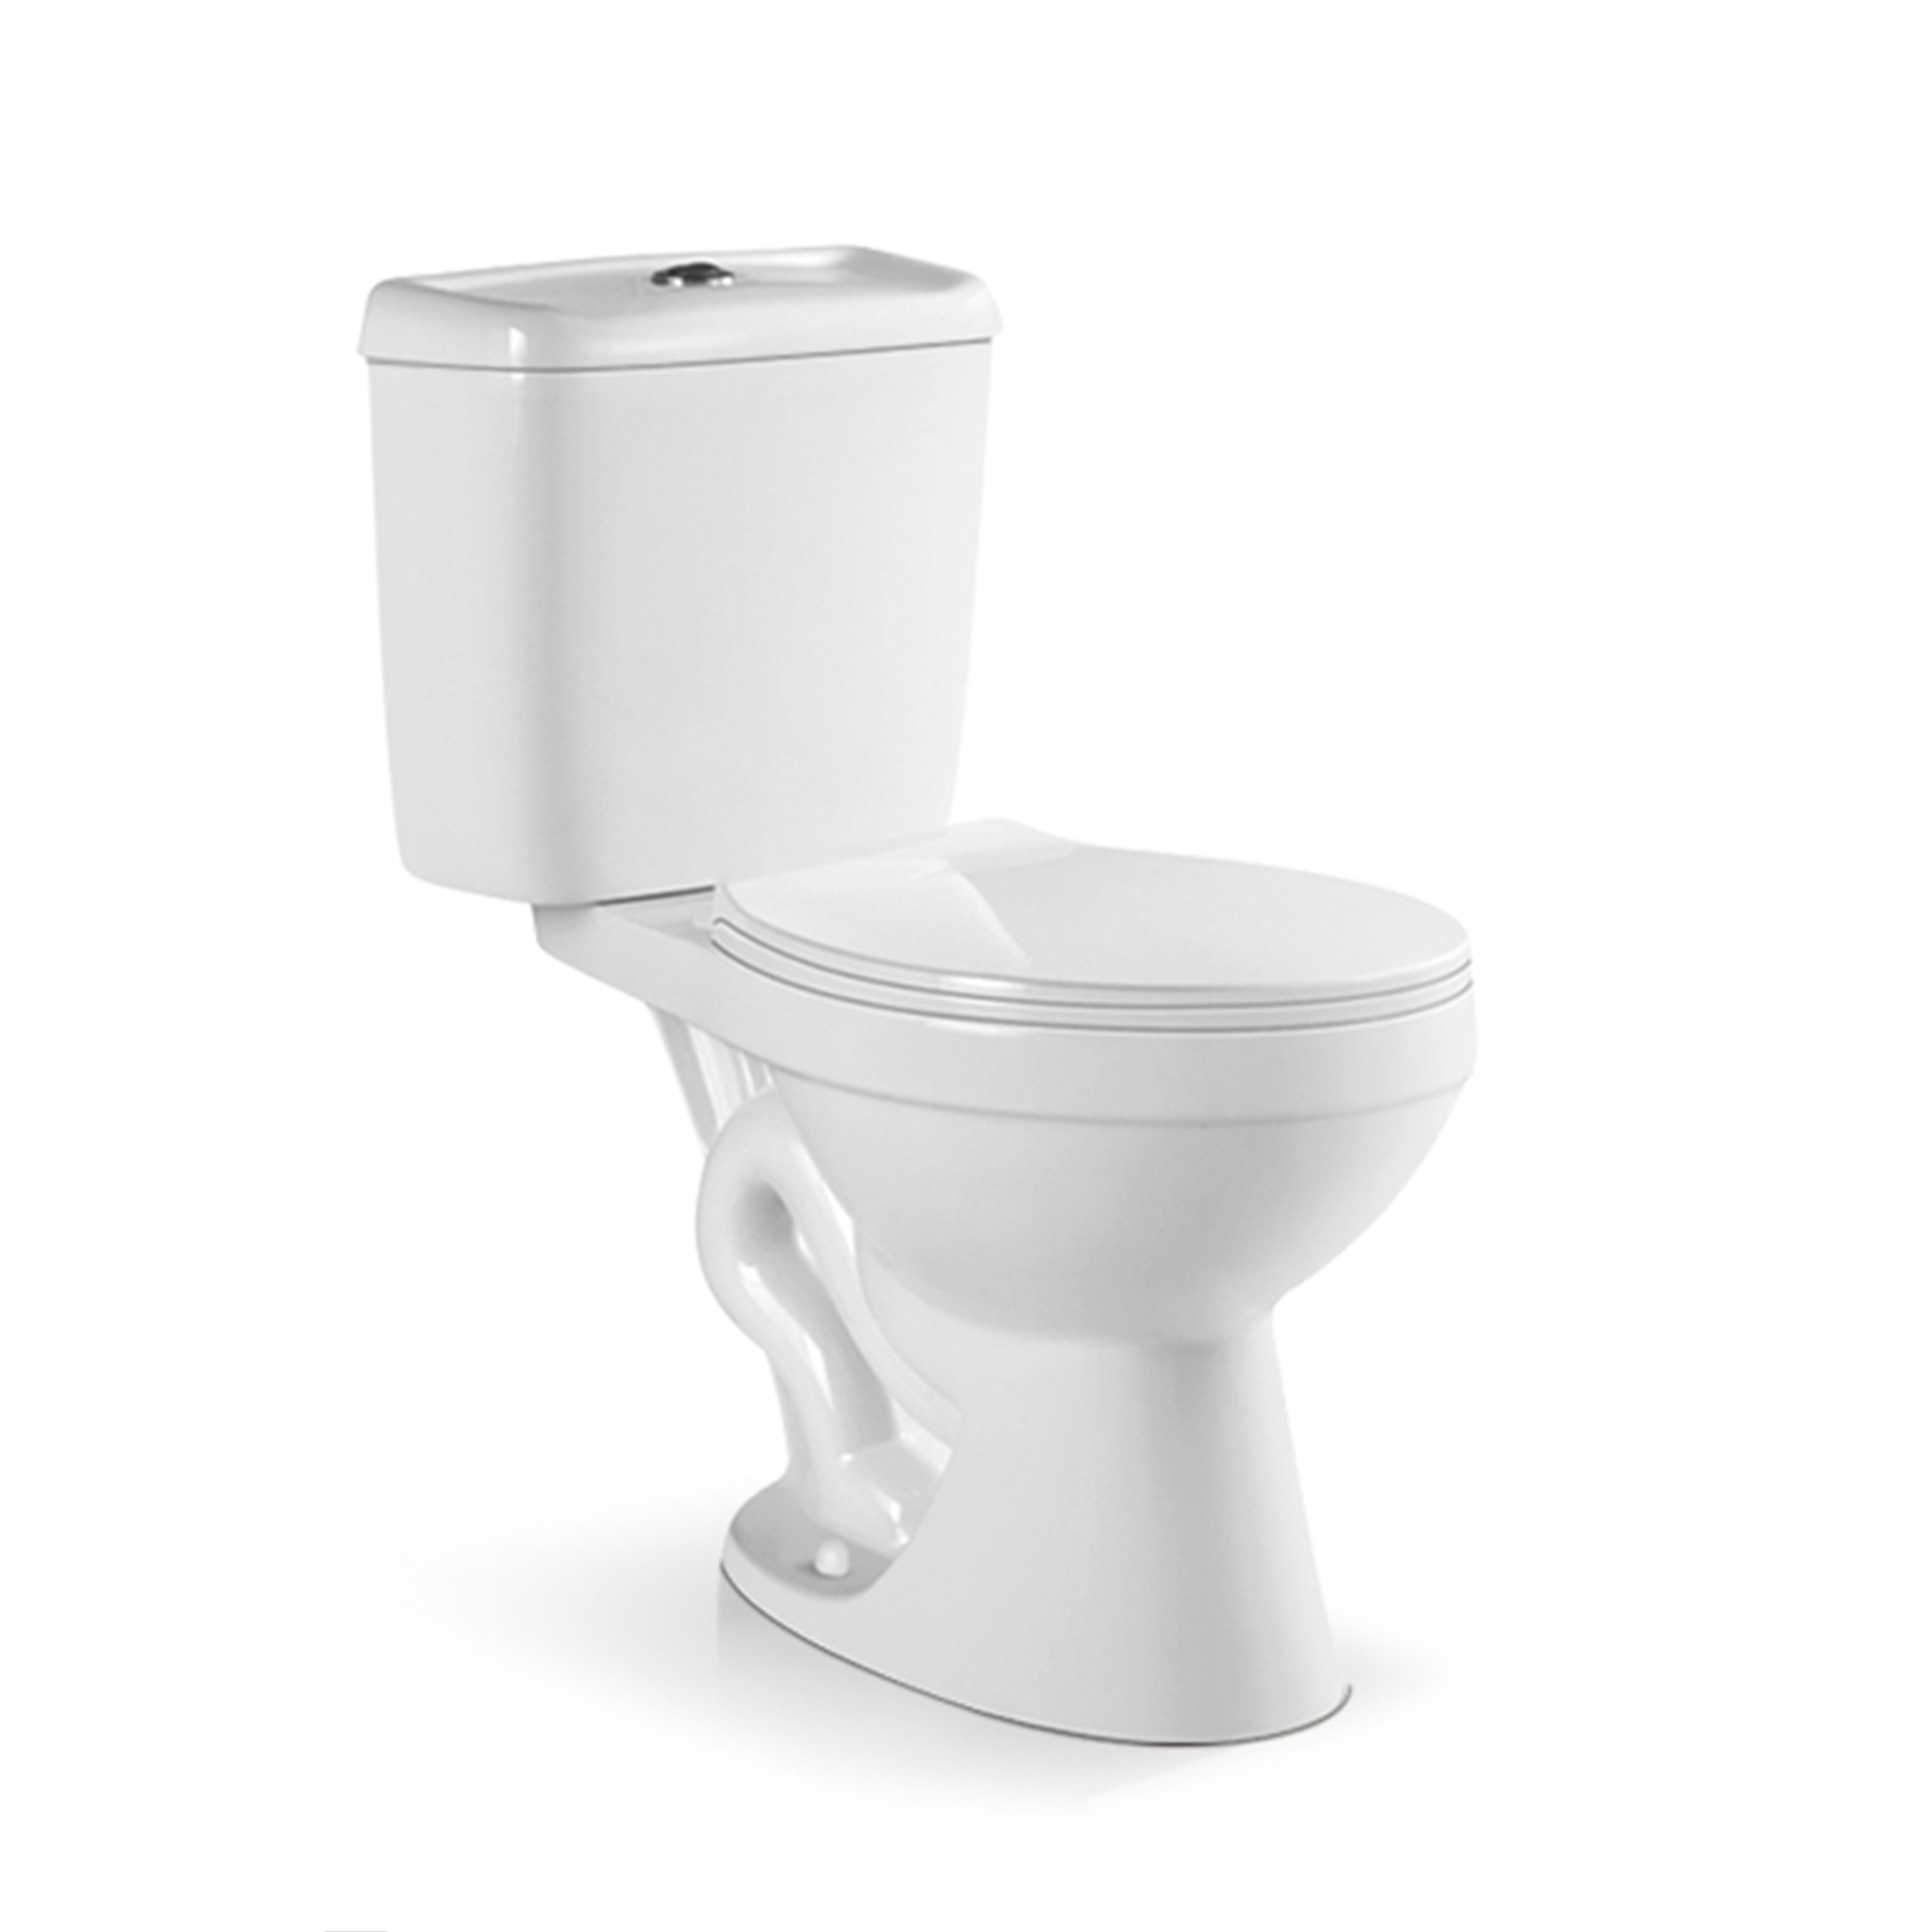 First-E5085 Sanitary ware bathroom ceramic wc piss two piece toilet